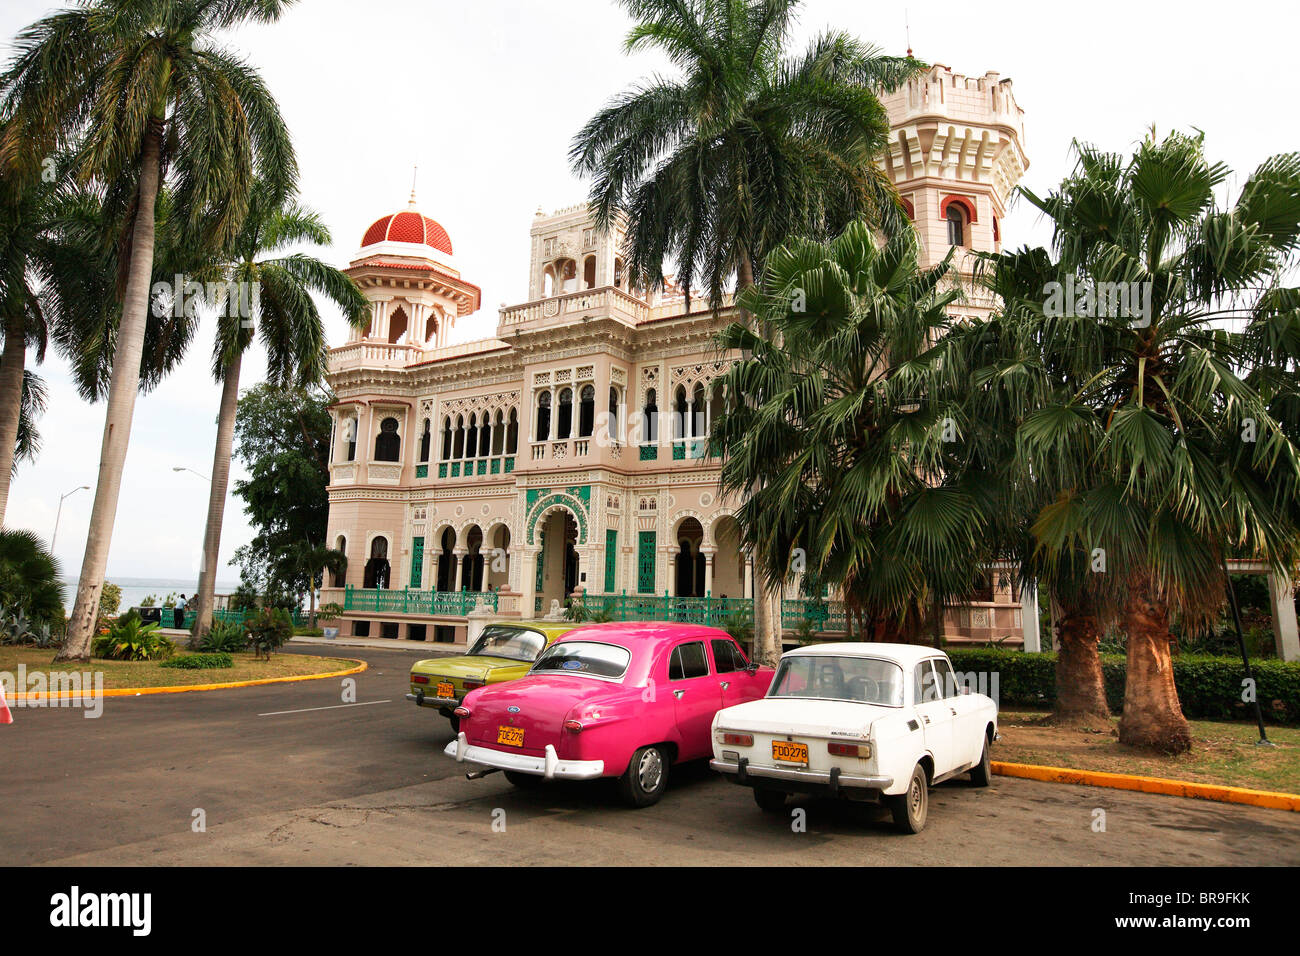 Del Valle Stock Photos Amp Del Valle Stock Images Alamy